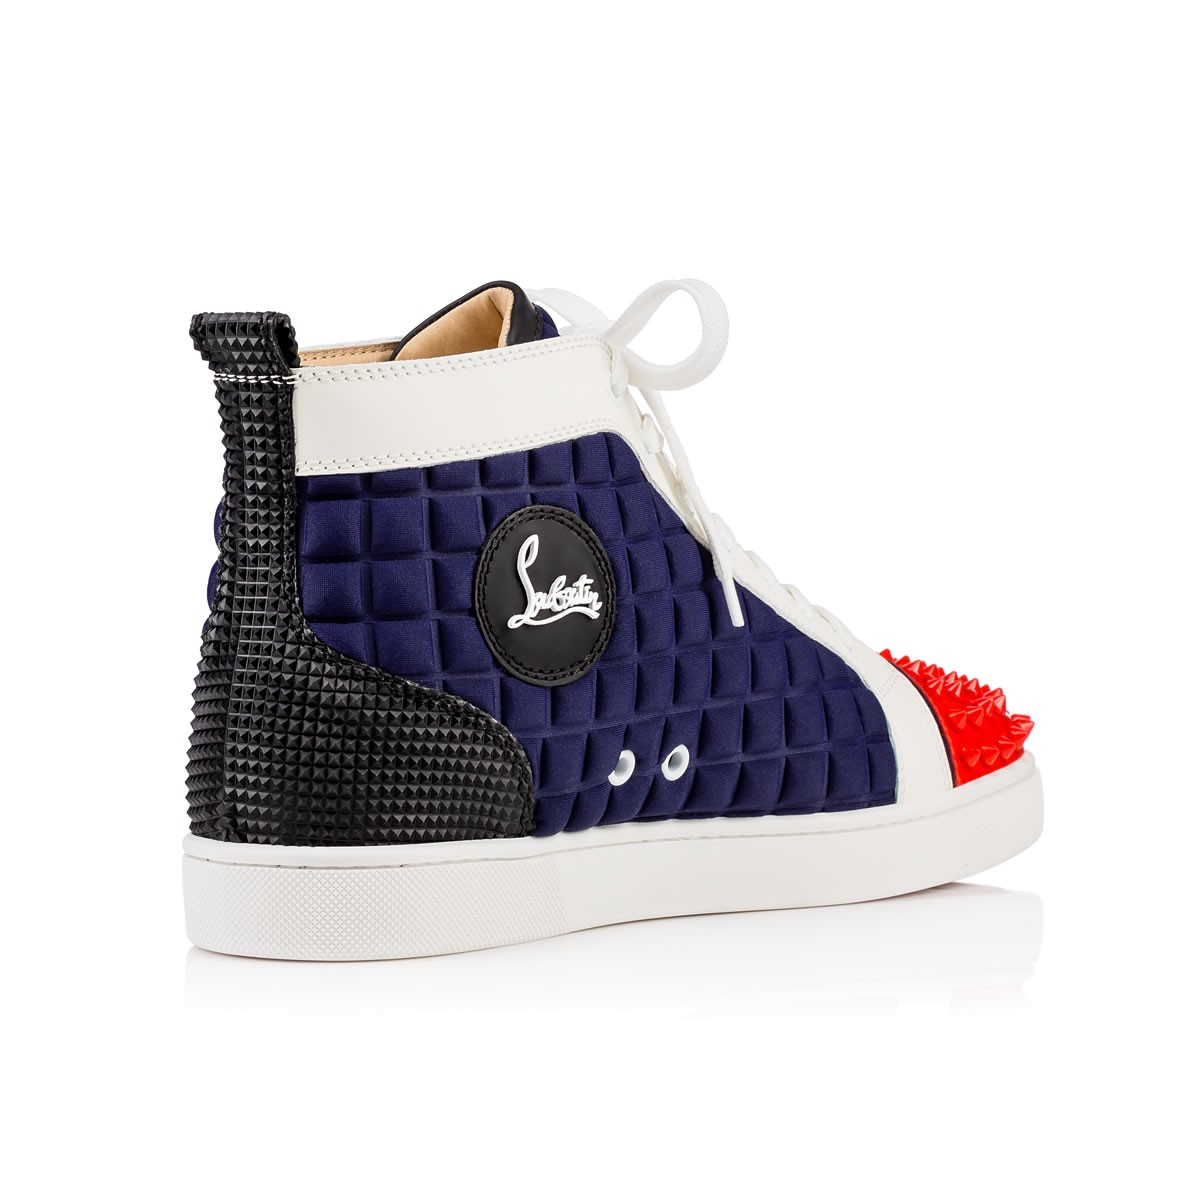 e0f0922218a5 ... canada lyst christian louboutin lou spikes neoprene high top sneakers  in blue for men 05bf9 3bf26